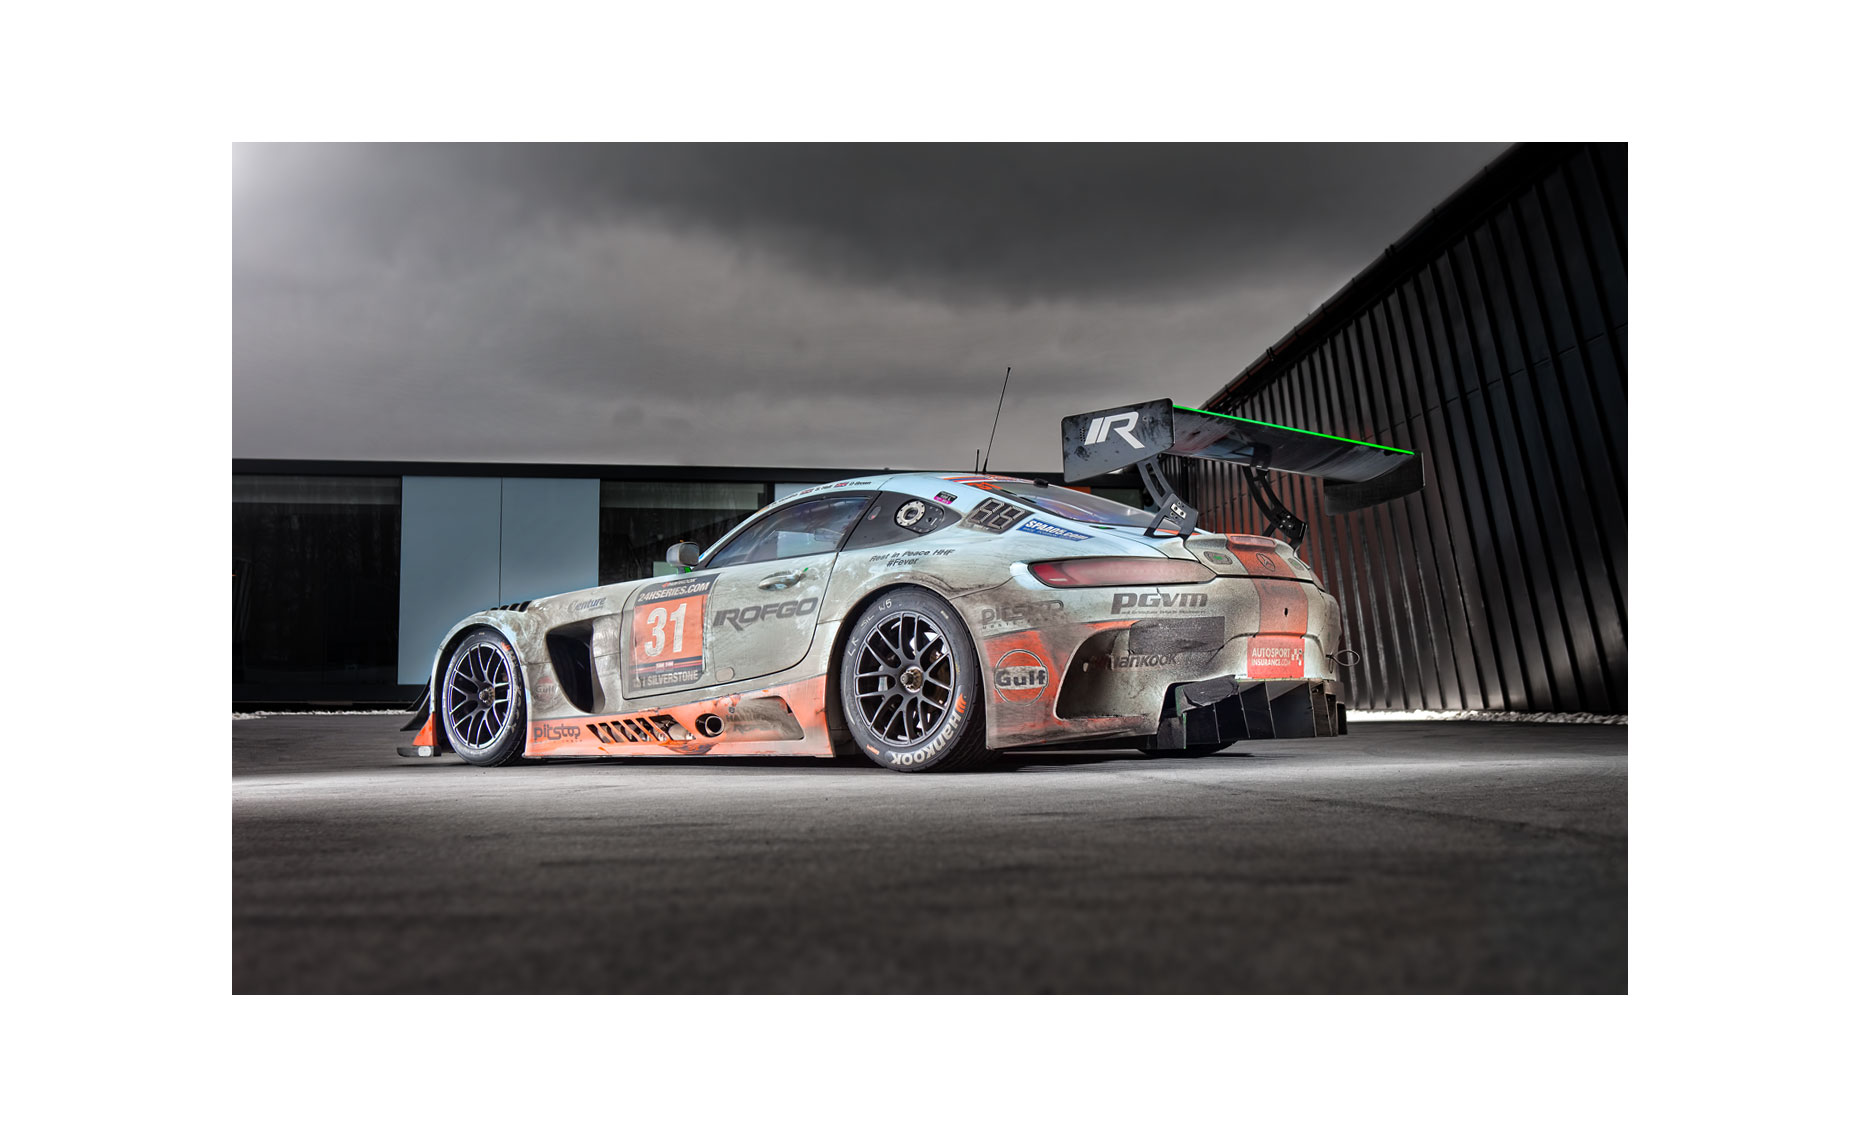 Mercedes-Benz--GT-R-NFP-Car-Photo-2